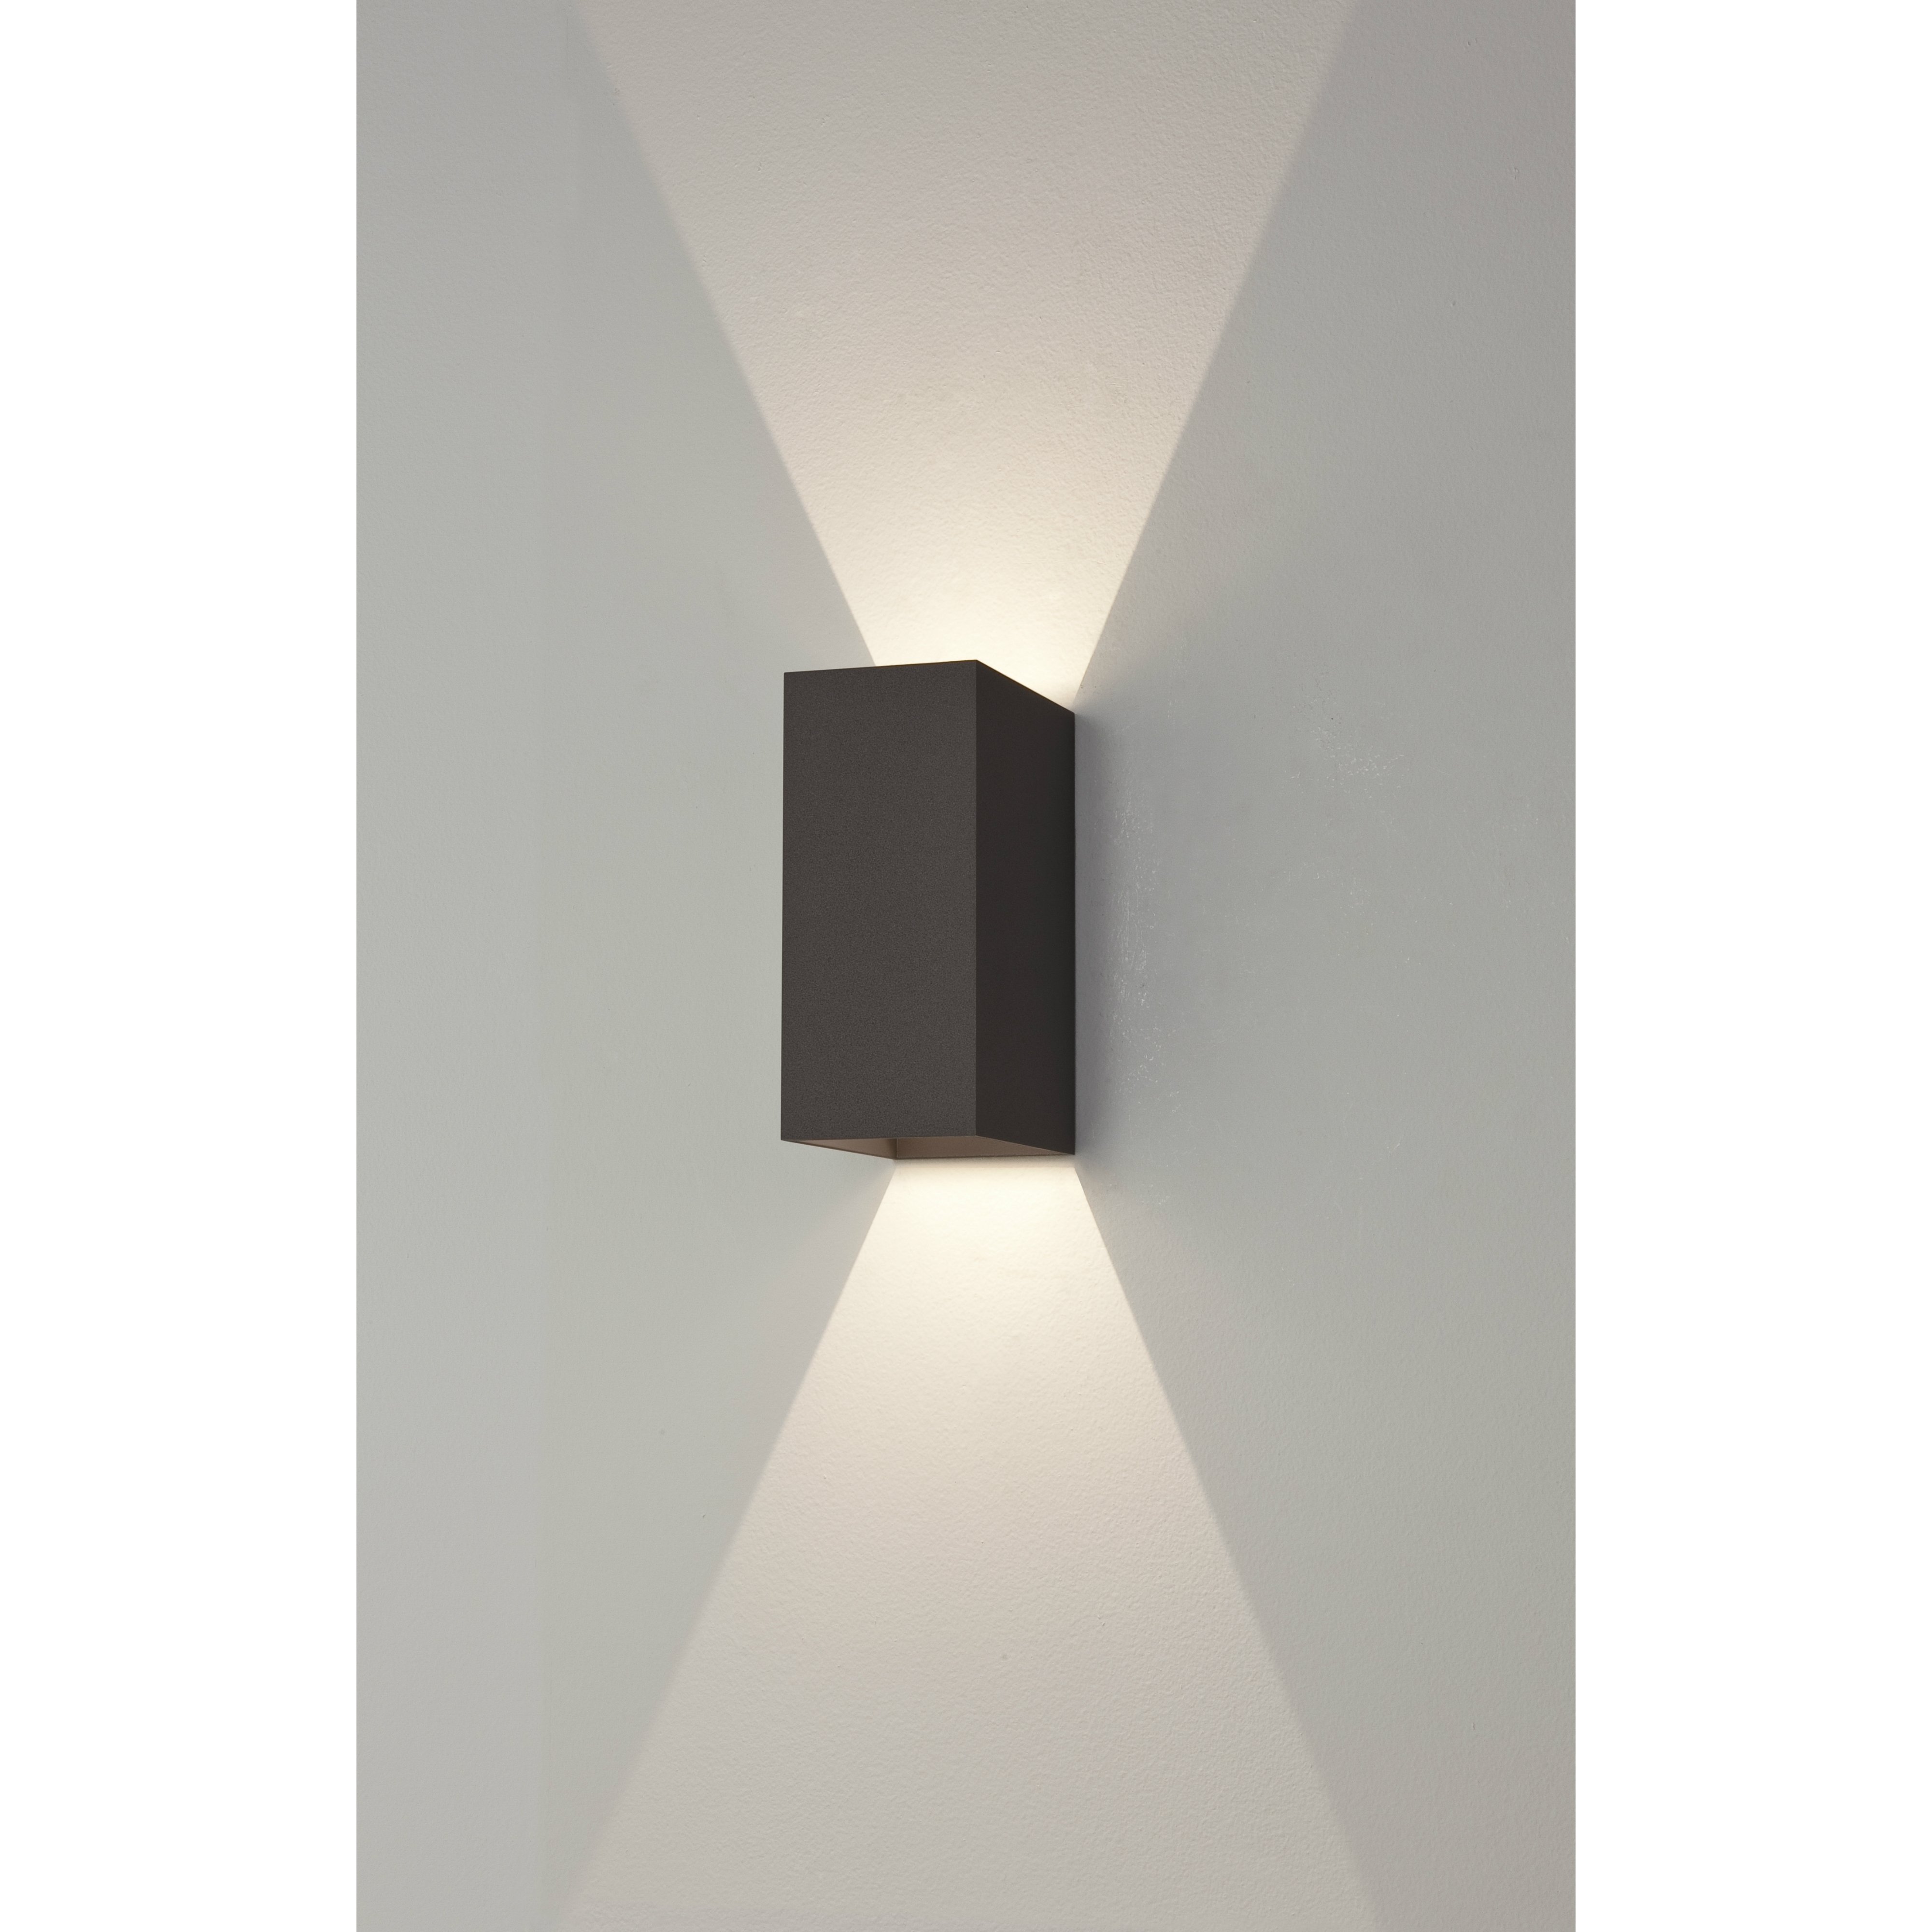 Well Liked Cheap Outdoor Wall Lighting Within Outdoor Corner Wall Lights Uk – Outdoor Designs (View 5 of 20)